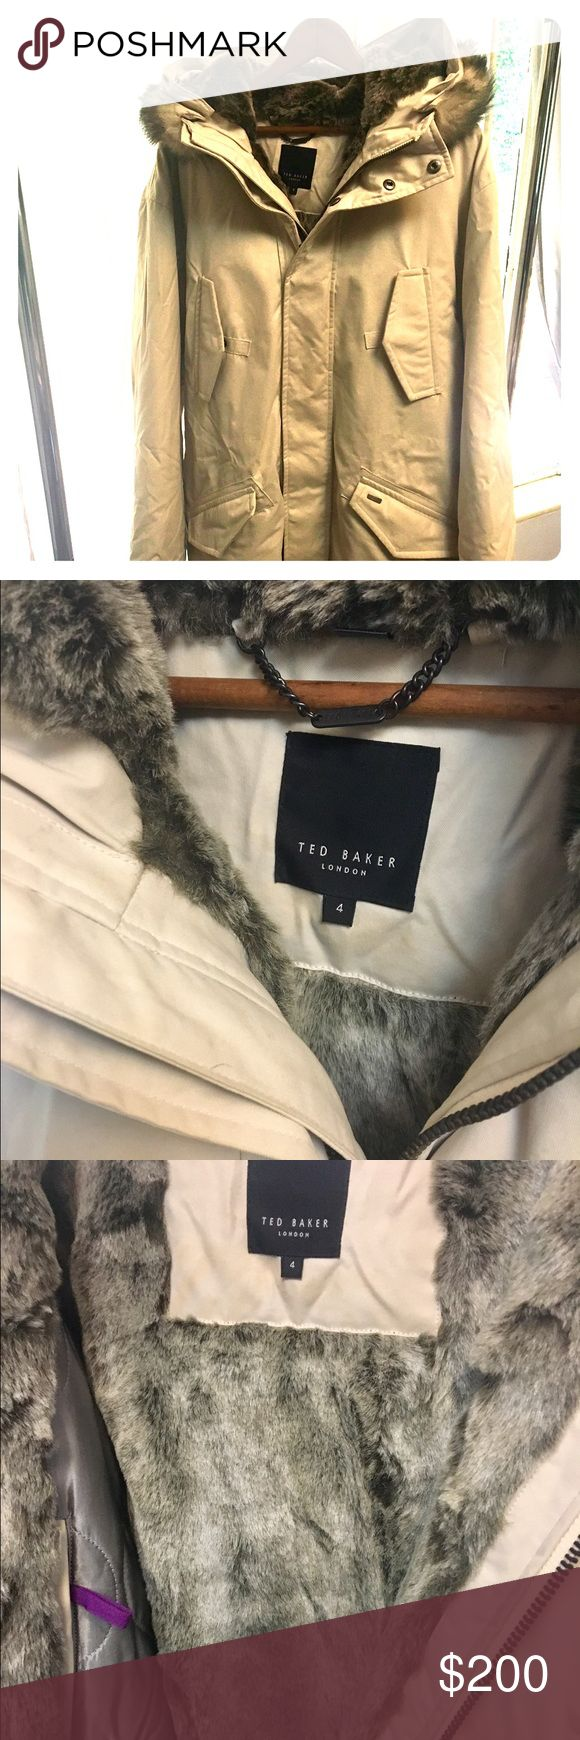 Ted Baker Men's Parka Beige Faux fur hooded lined parka. Mid thigh length. Interior pockets. Metal zipper and snap button closures. Drawstring bottom. Baker by Ted Baker Jackets & Coats Trench Coats